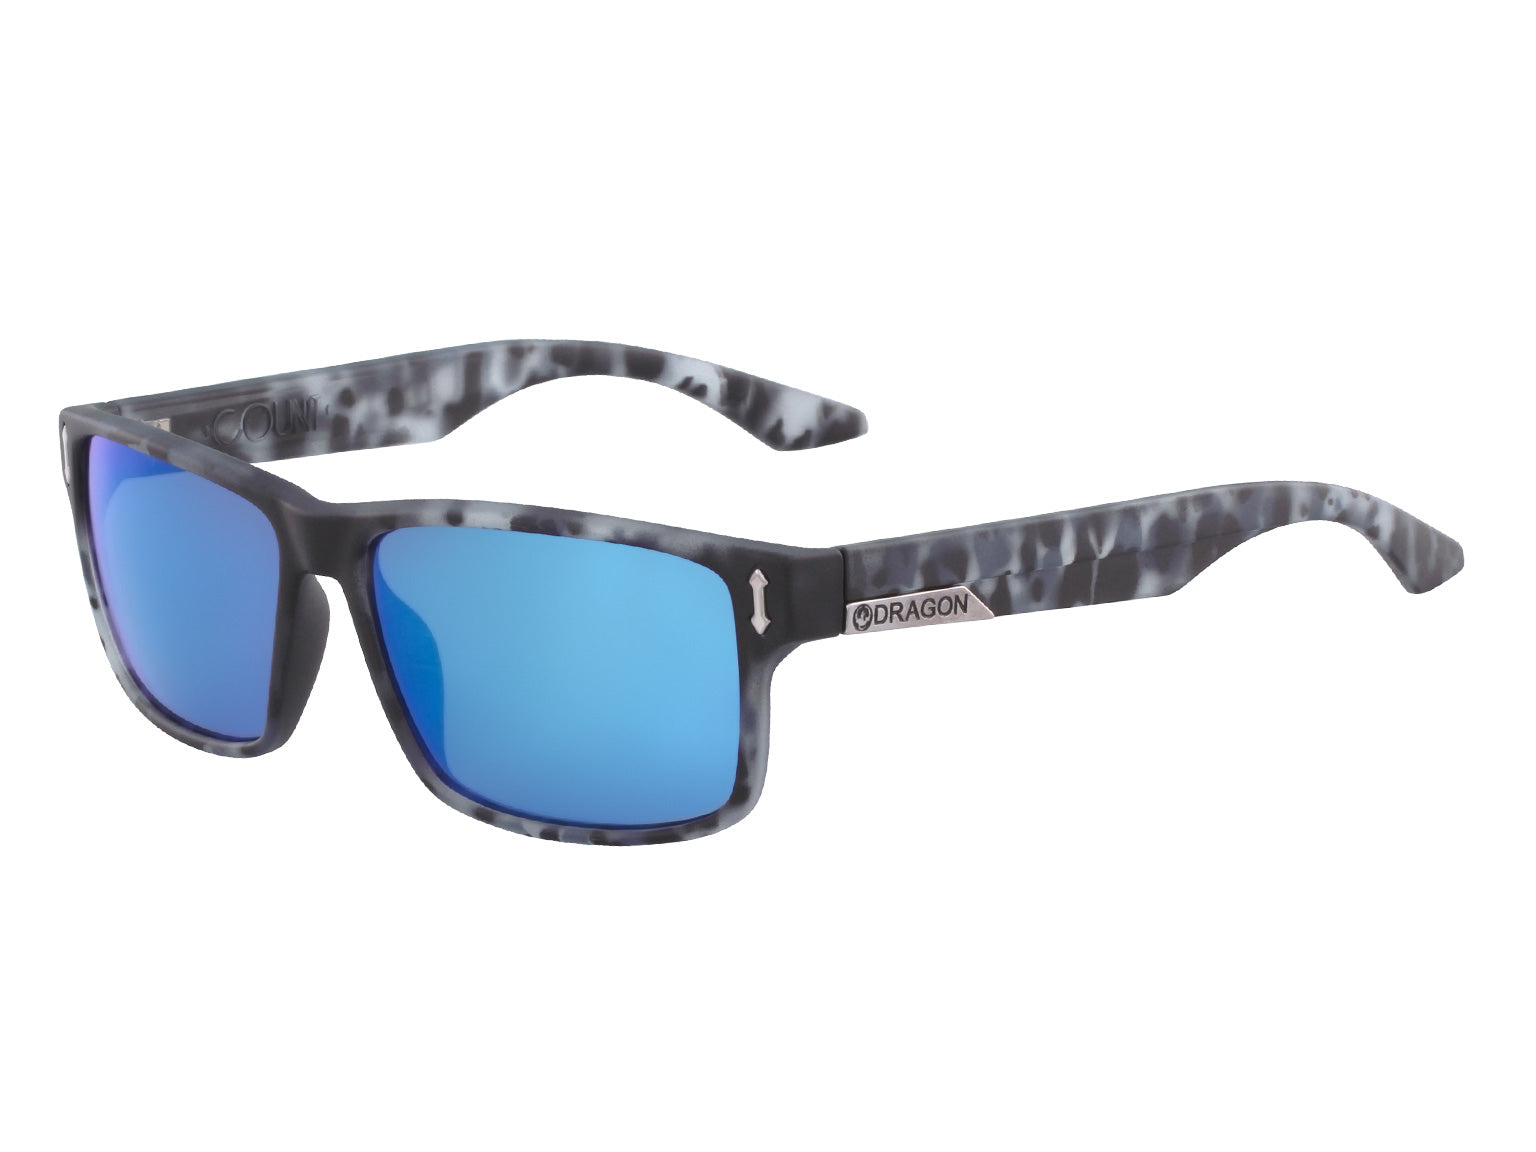 COUNT - Matte Midnight Tortoise with Lumalens Blue Ionized Lens